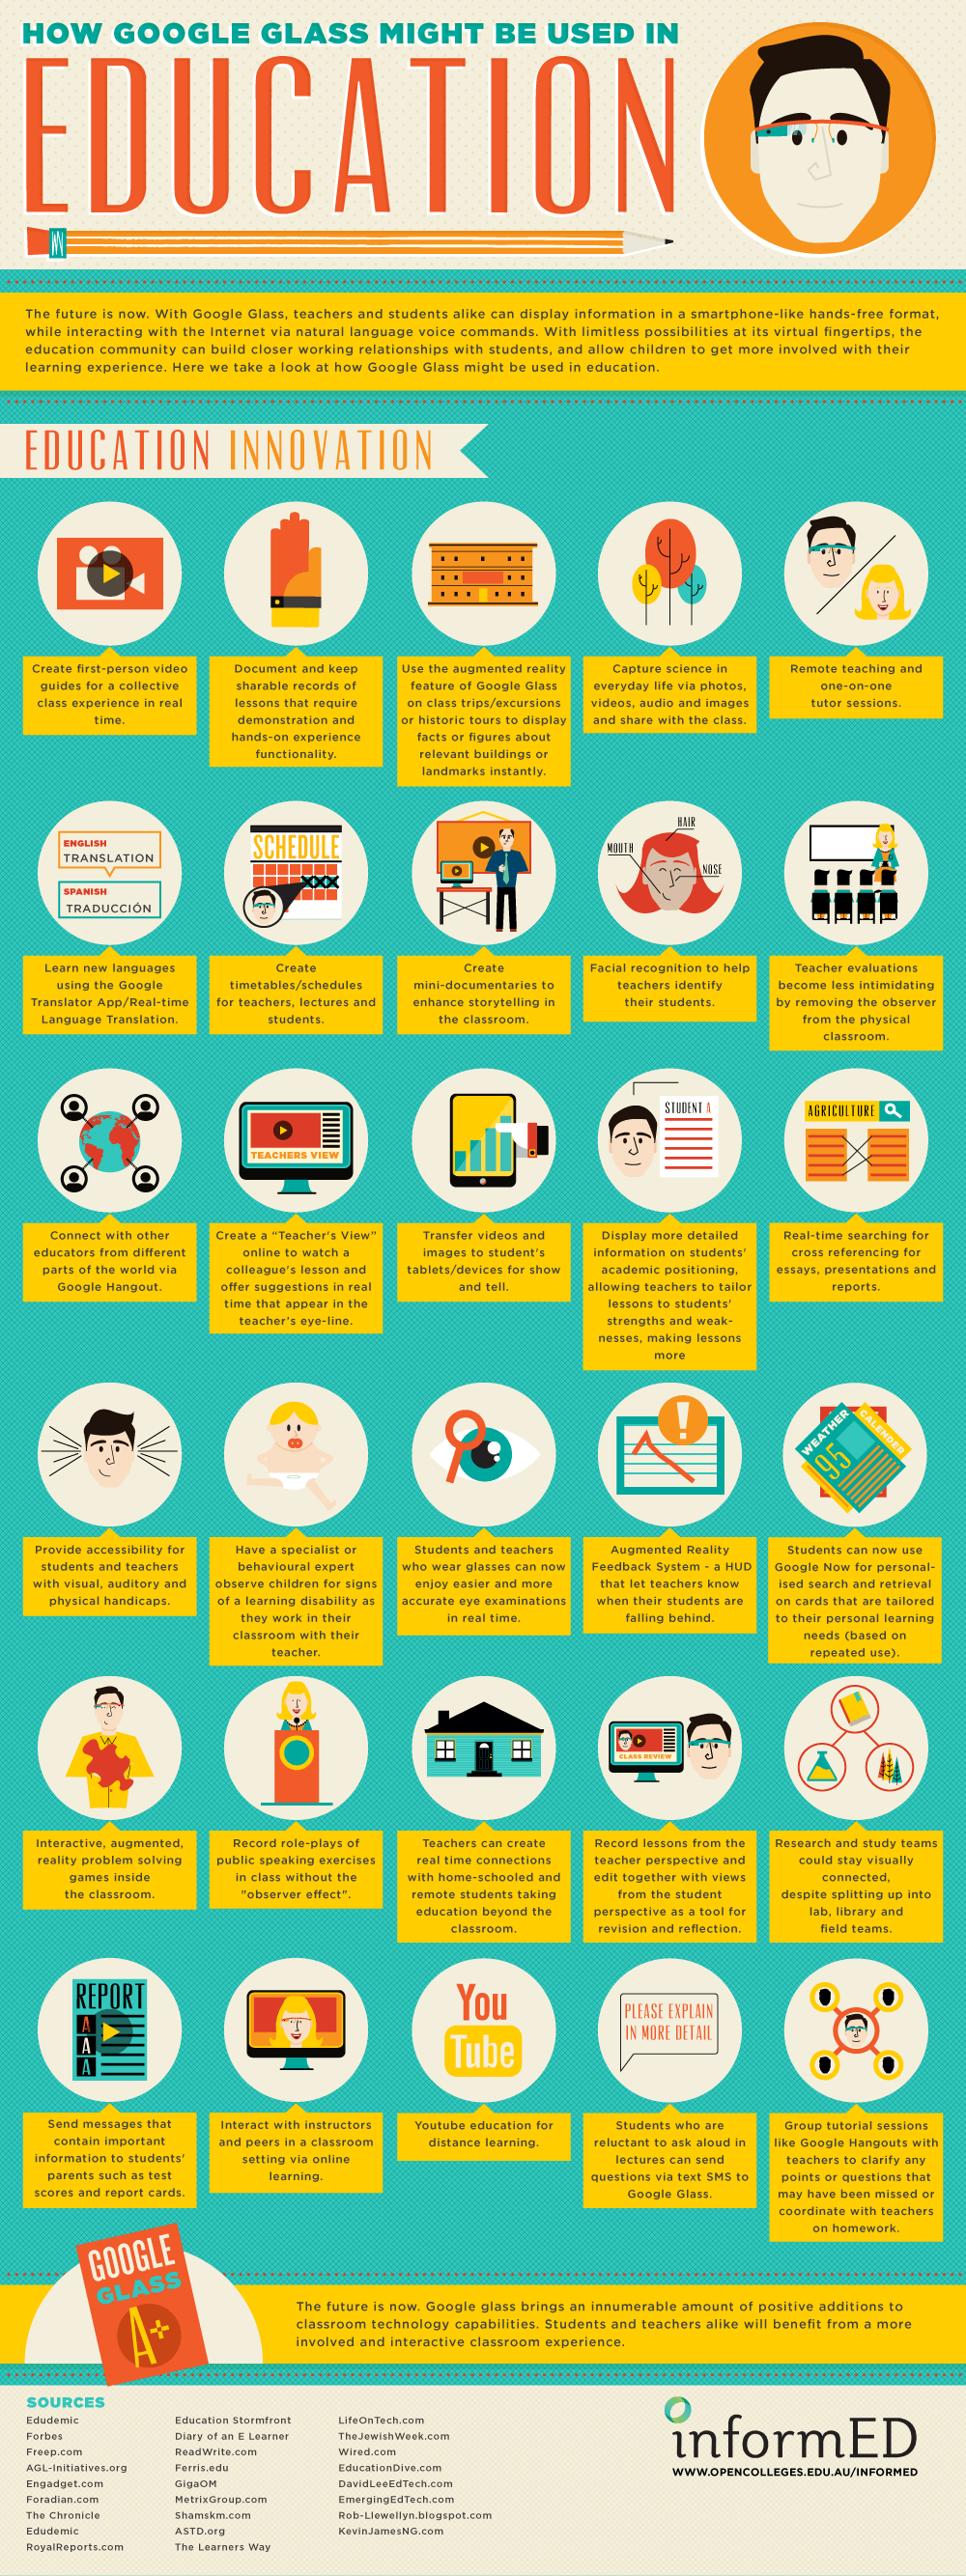 Google-Glass in education infographic